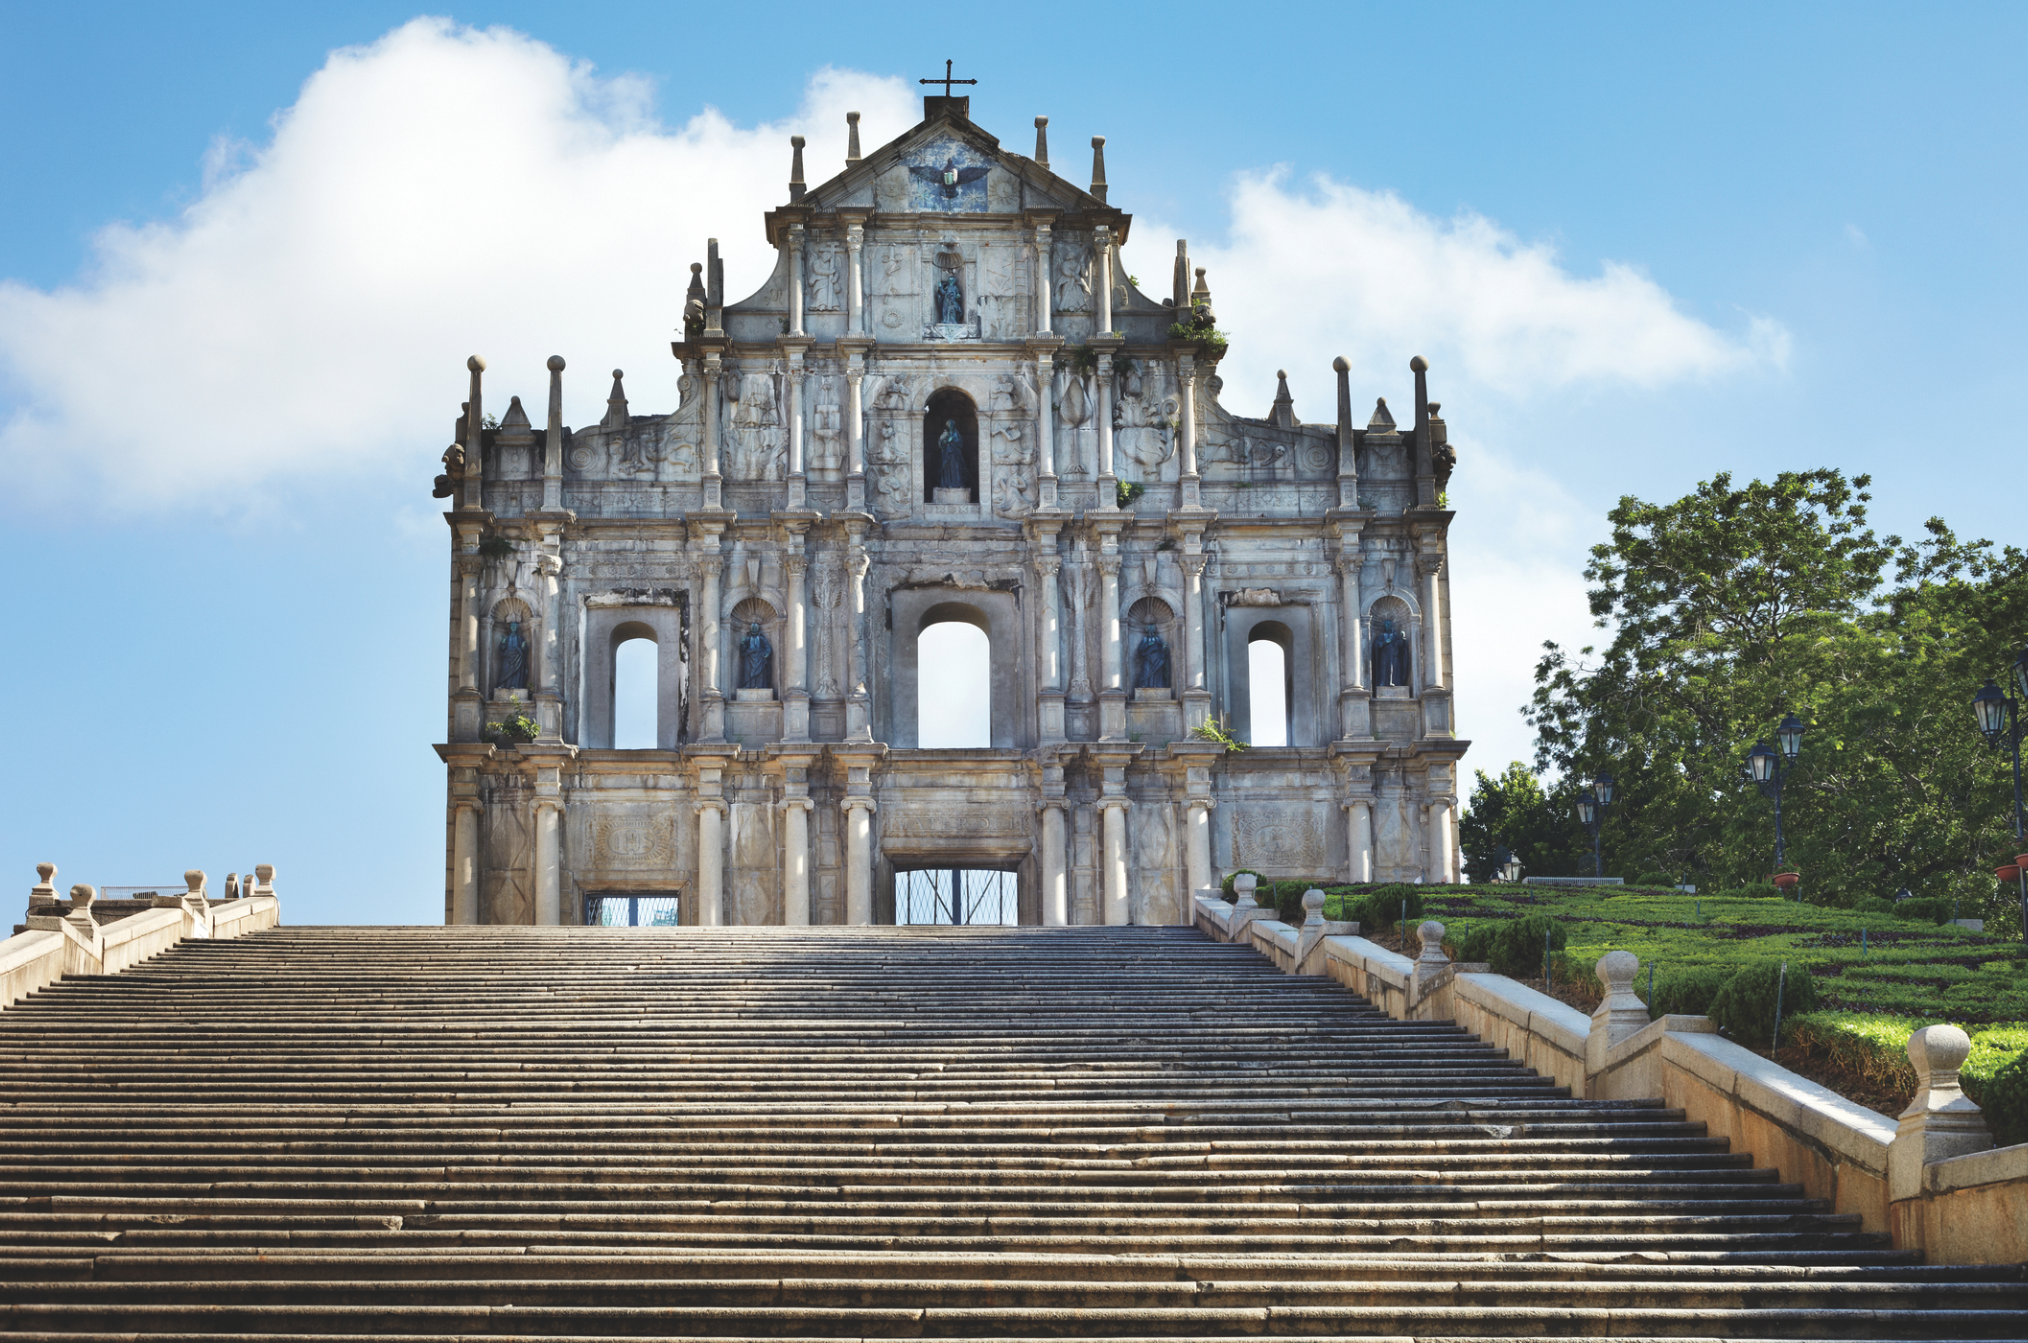 The Ruins of St Paul's (Macao heritage feature)